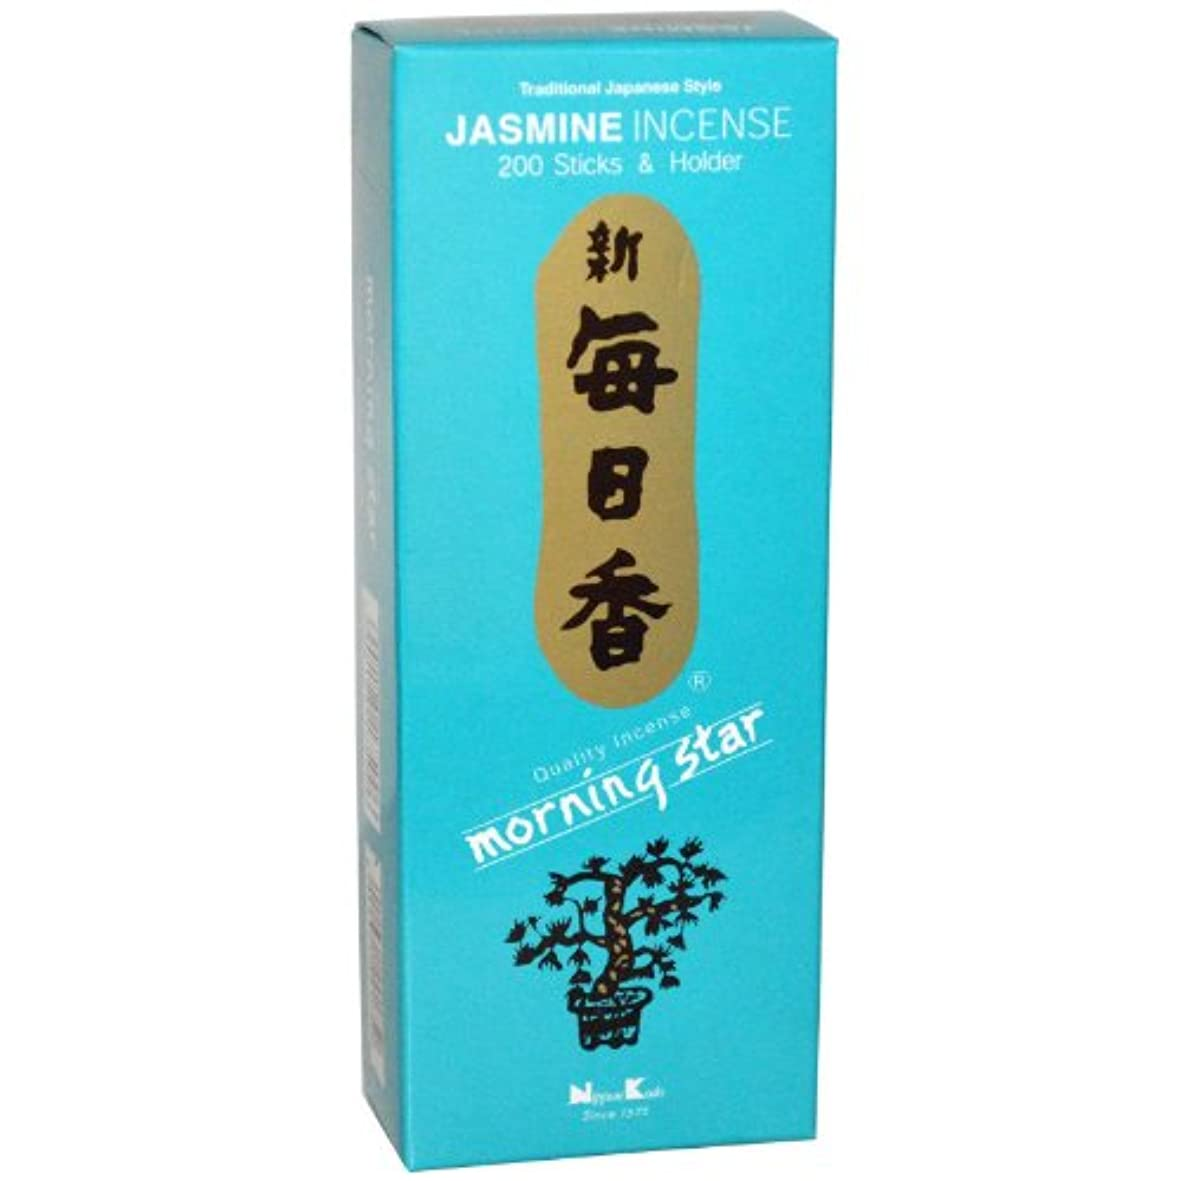 舗装潮裁判官Nippon Kodo, Morning Star, Jasmine Incense, 200 Sticks & Holder